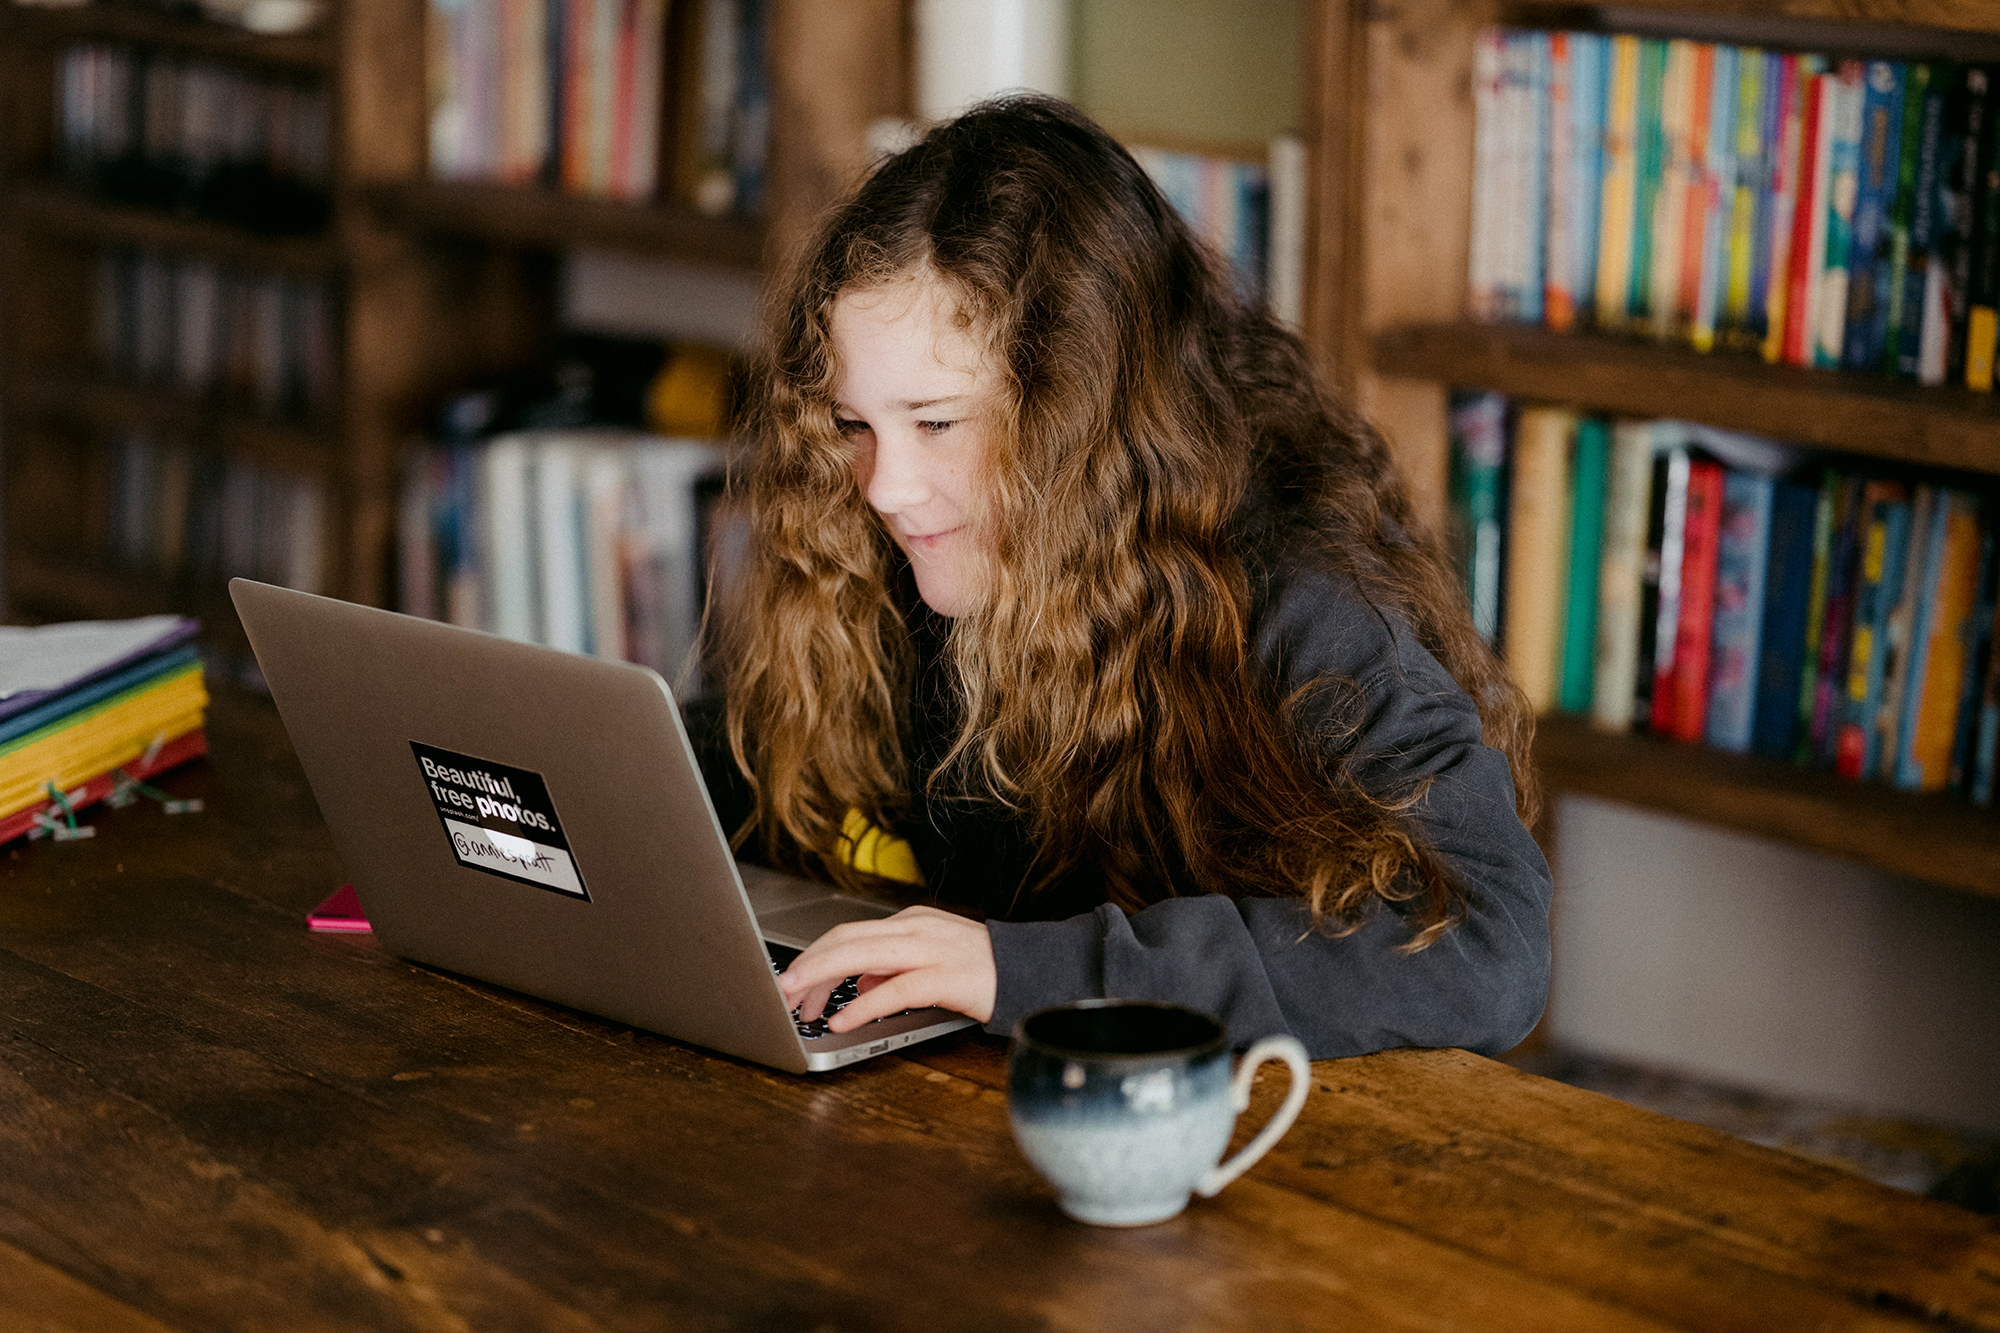 A girl sits at her laptop smiling, in a room of books.